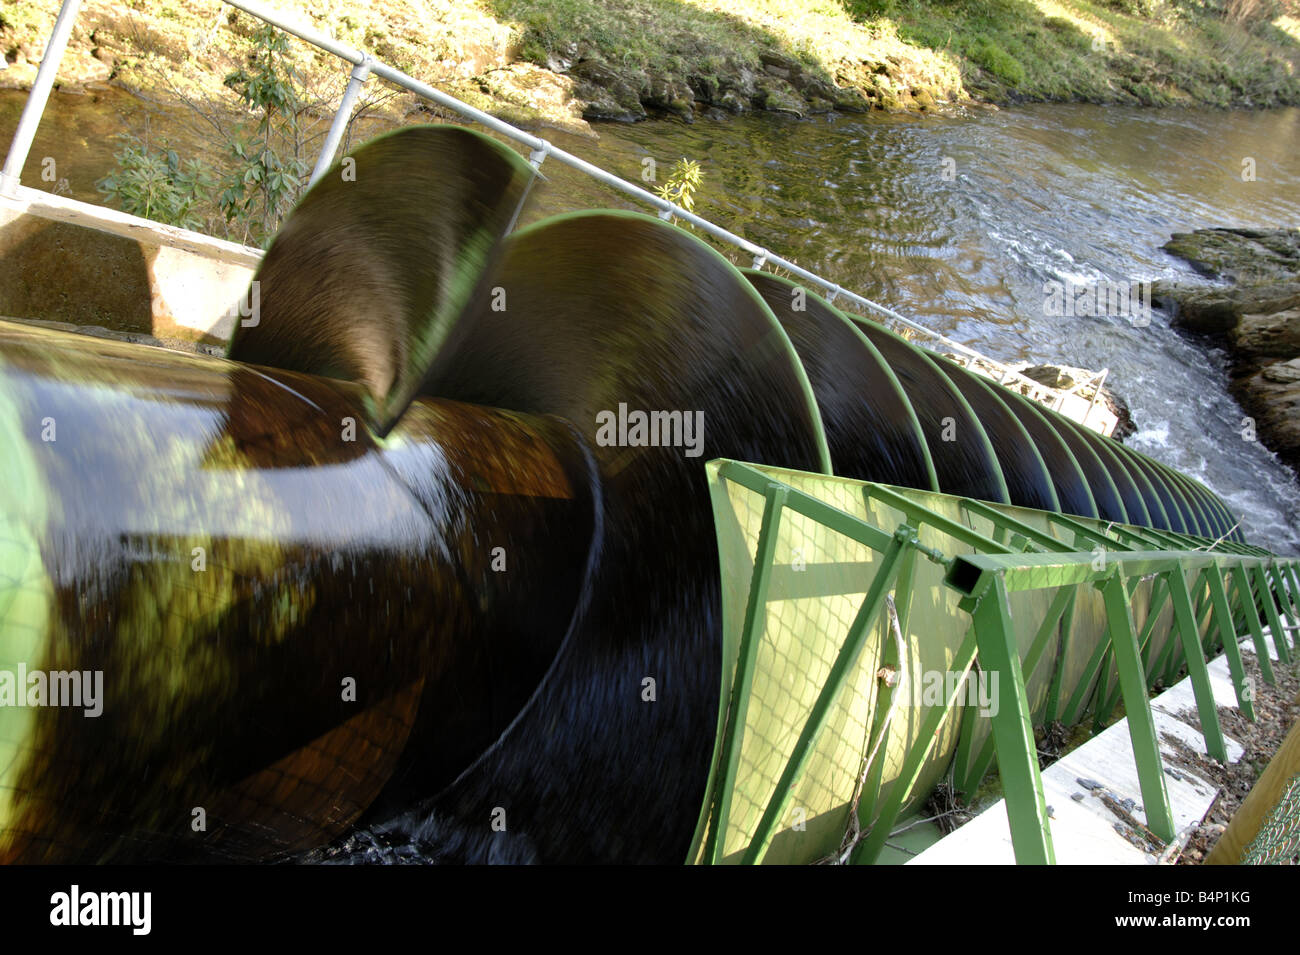 Archemedies Screw Hydro Power station at Dart Valley Country Park South Devon England - Stock Image